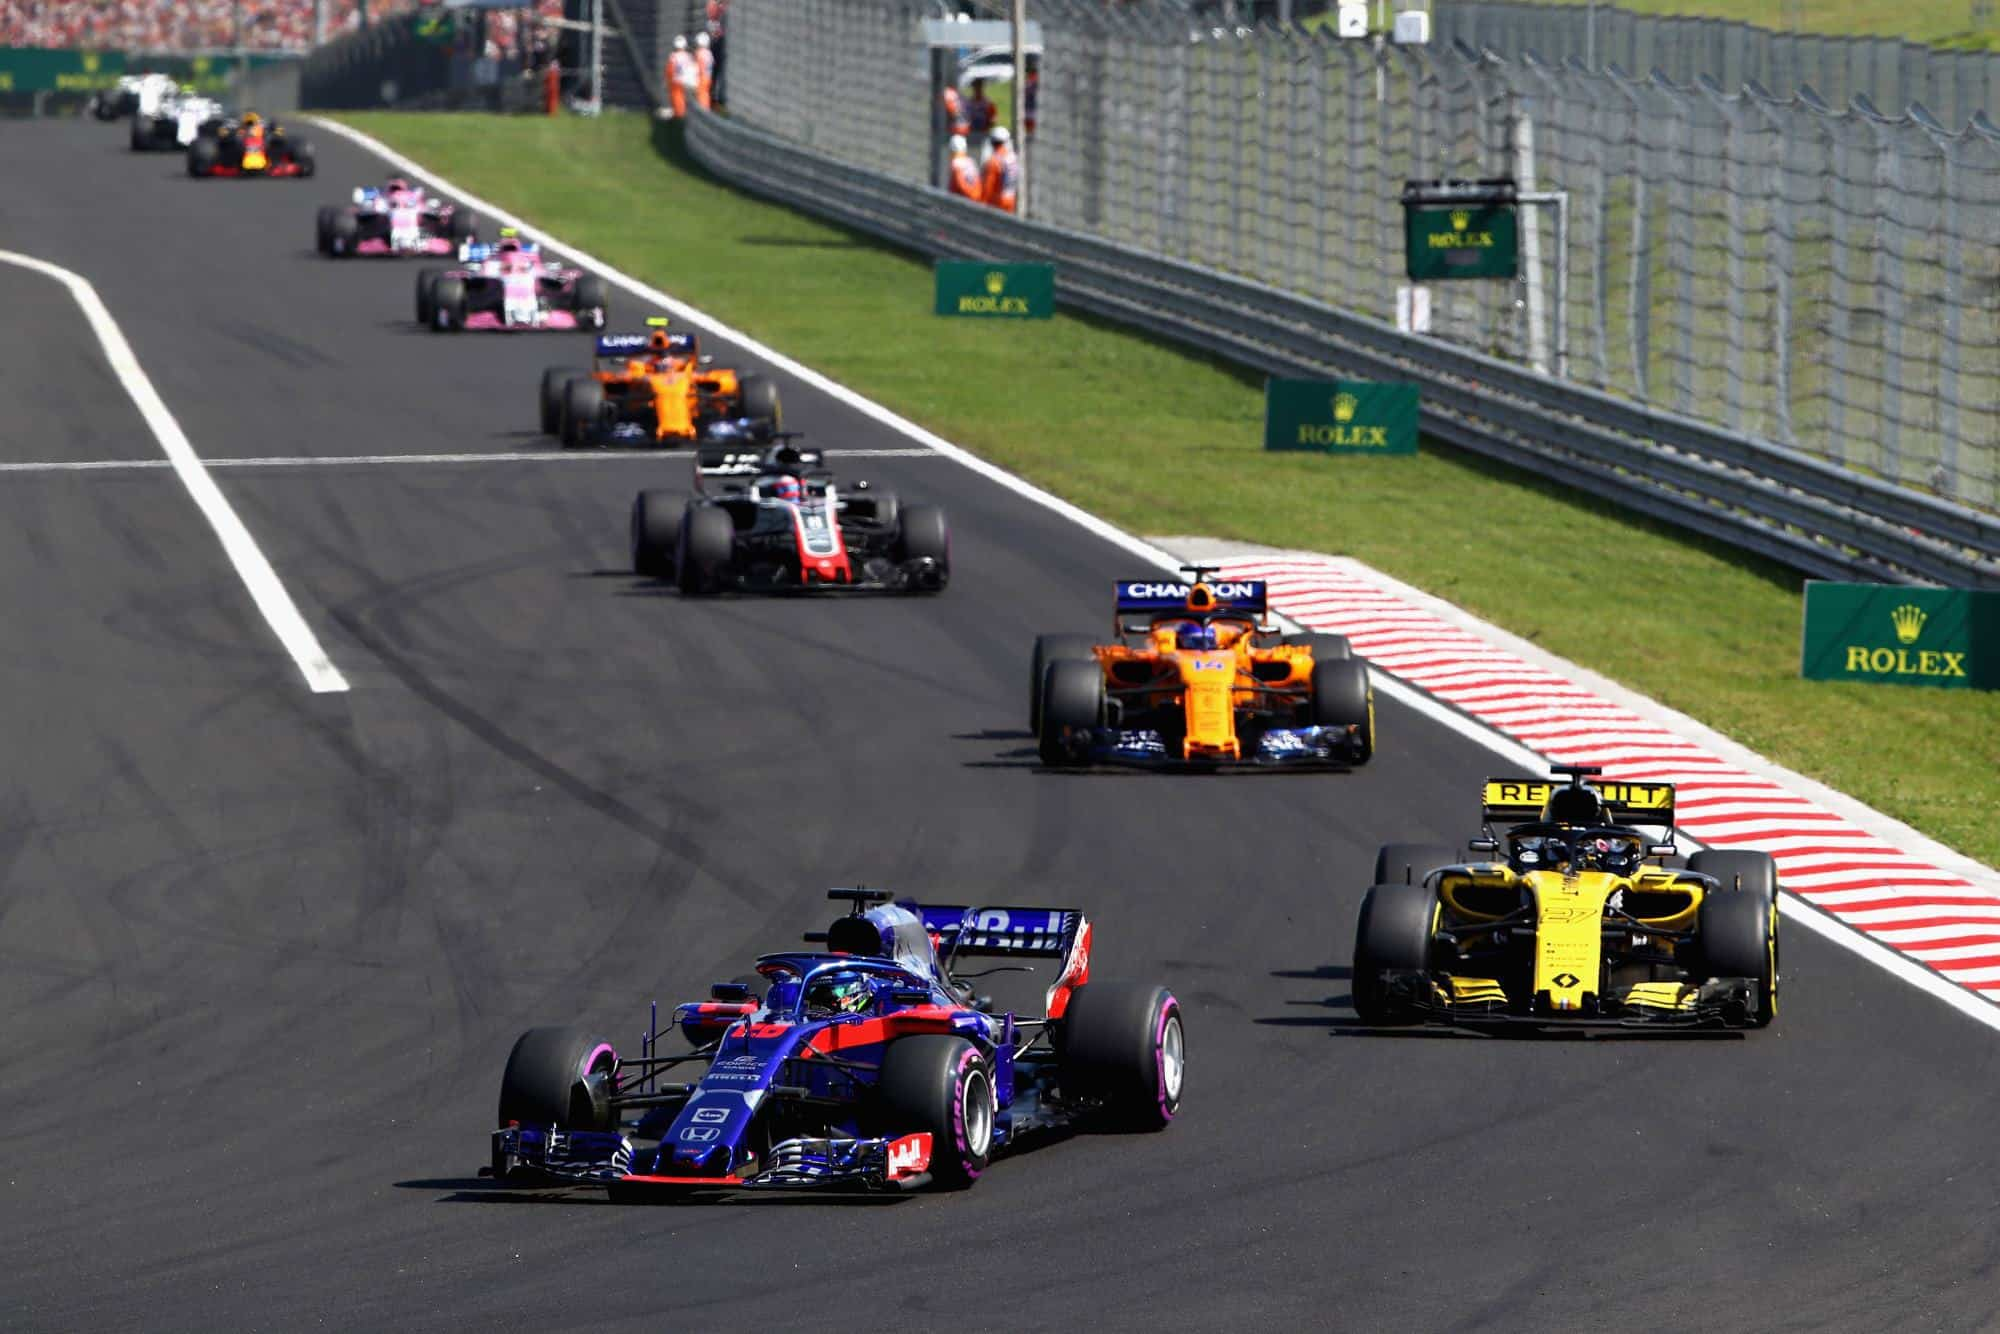 Gasly Toro Rosso leads Sainz Renault and Alonso McLaren Photo Toro Rosso Red Bull